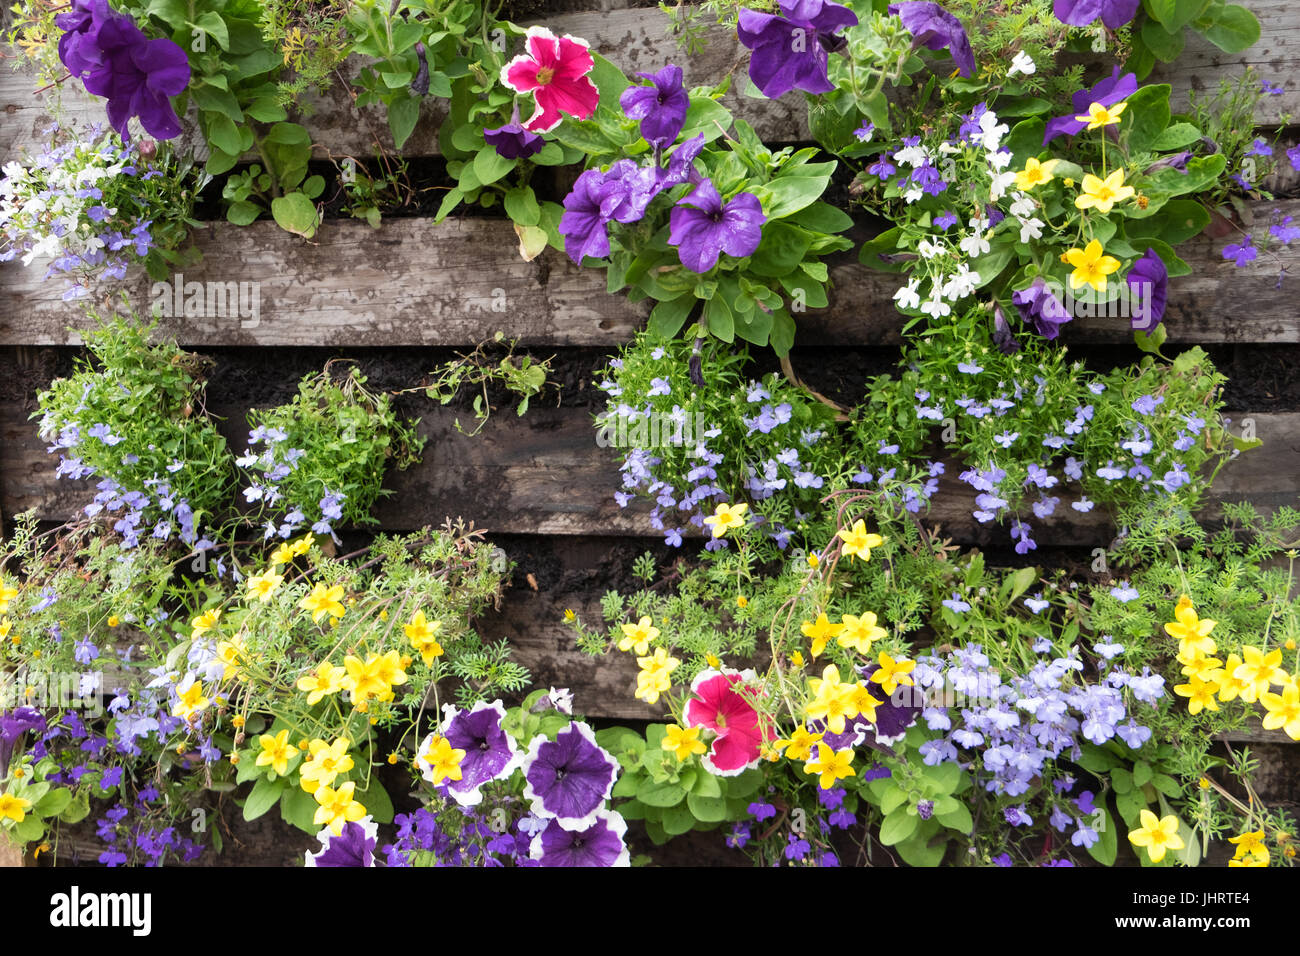 Trailing plants grown in recycled pallet container - Stock Image